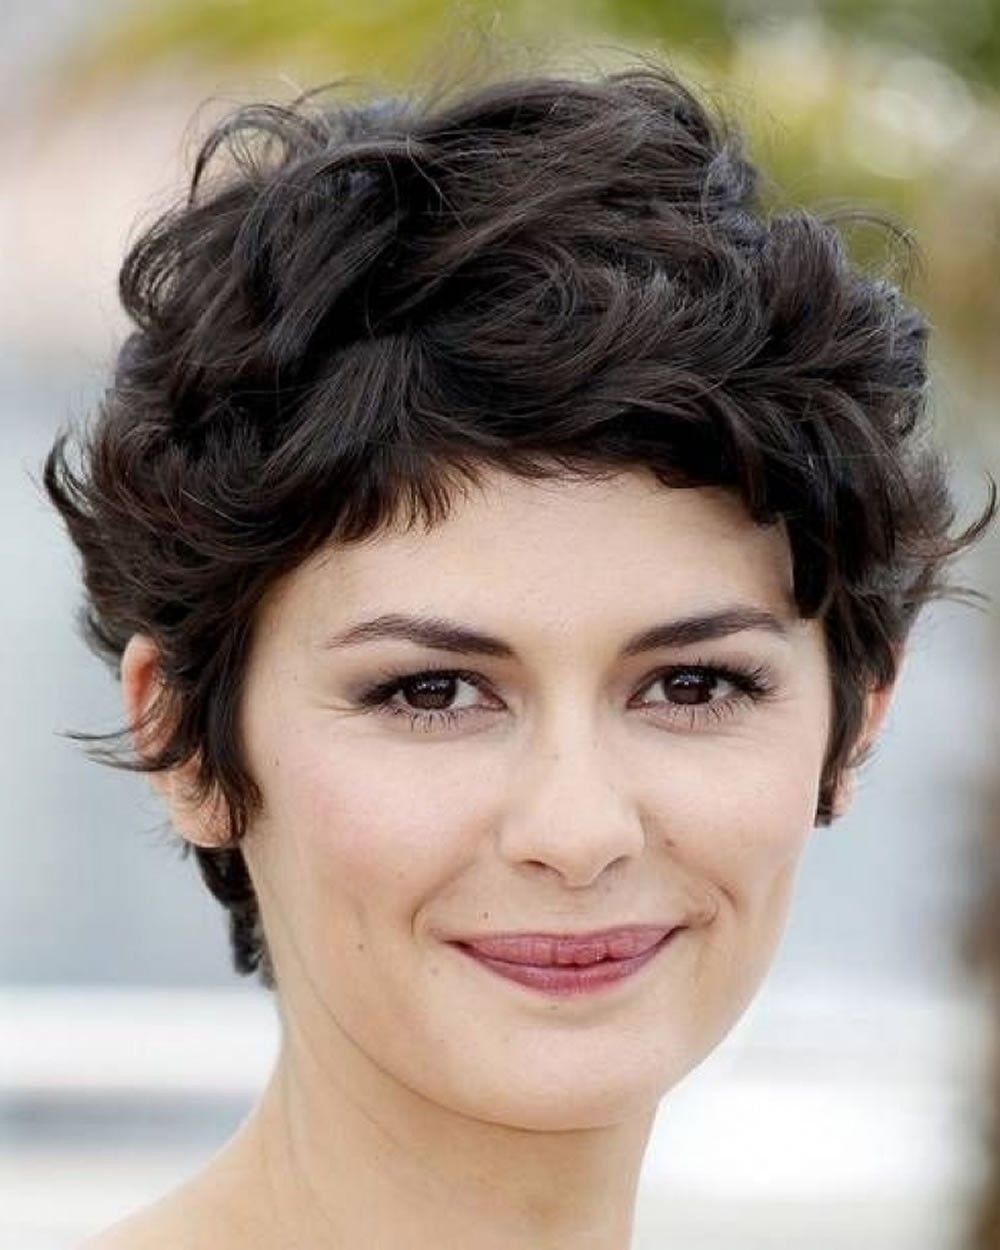 Image Result For Short Hairstyles For Round Faces 2018 Short Hair Styles For Round Faces Thick Hair Styles Short Hair Fringe